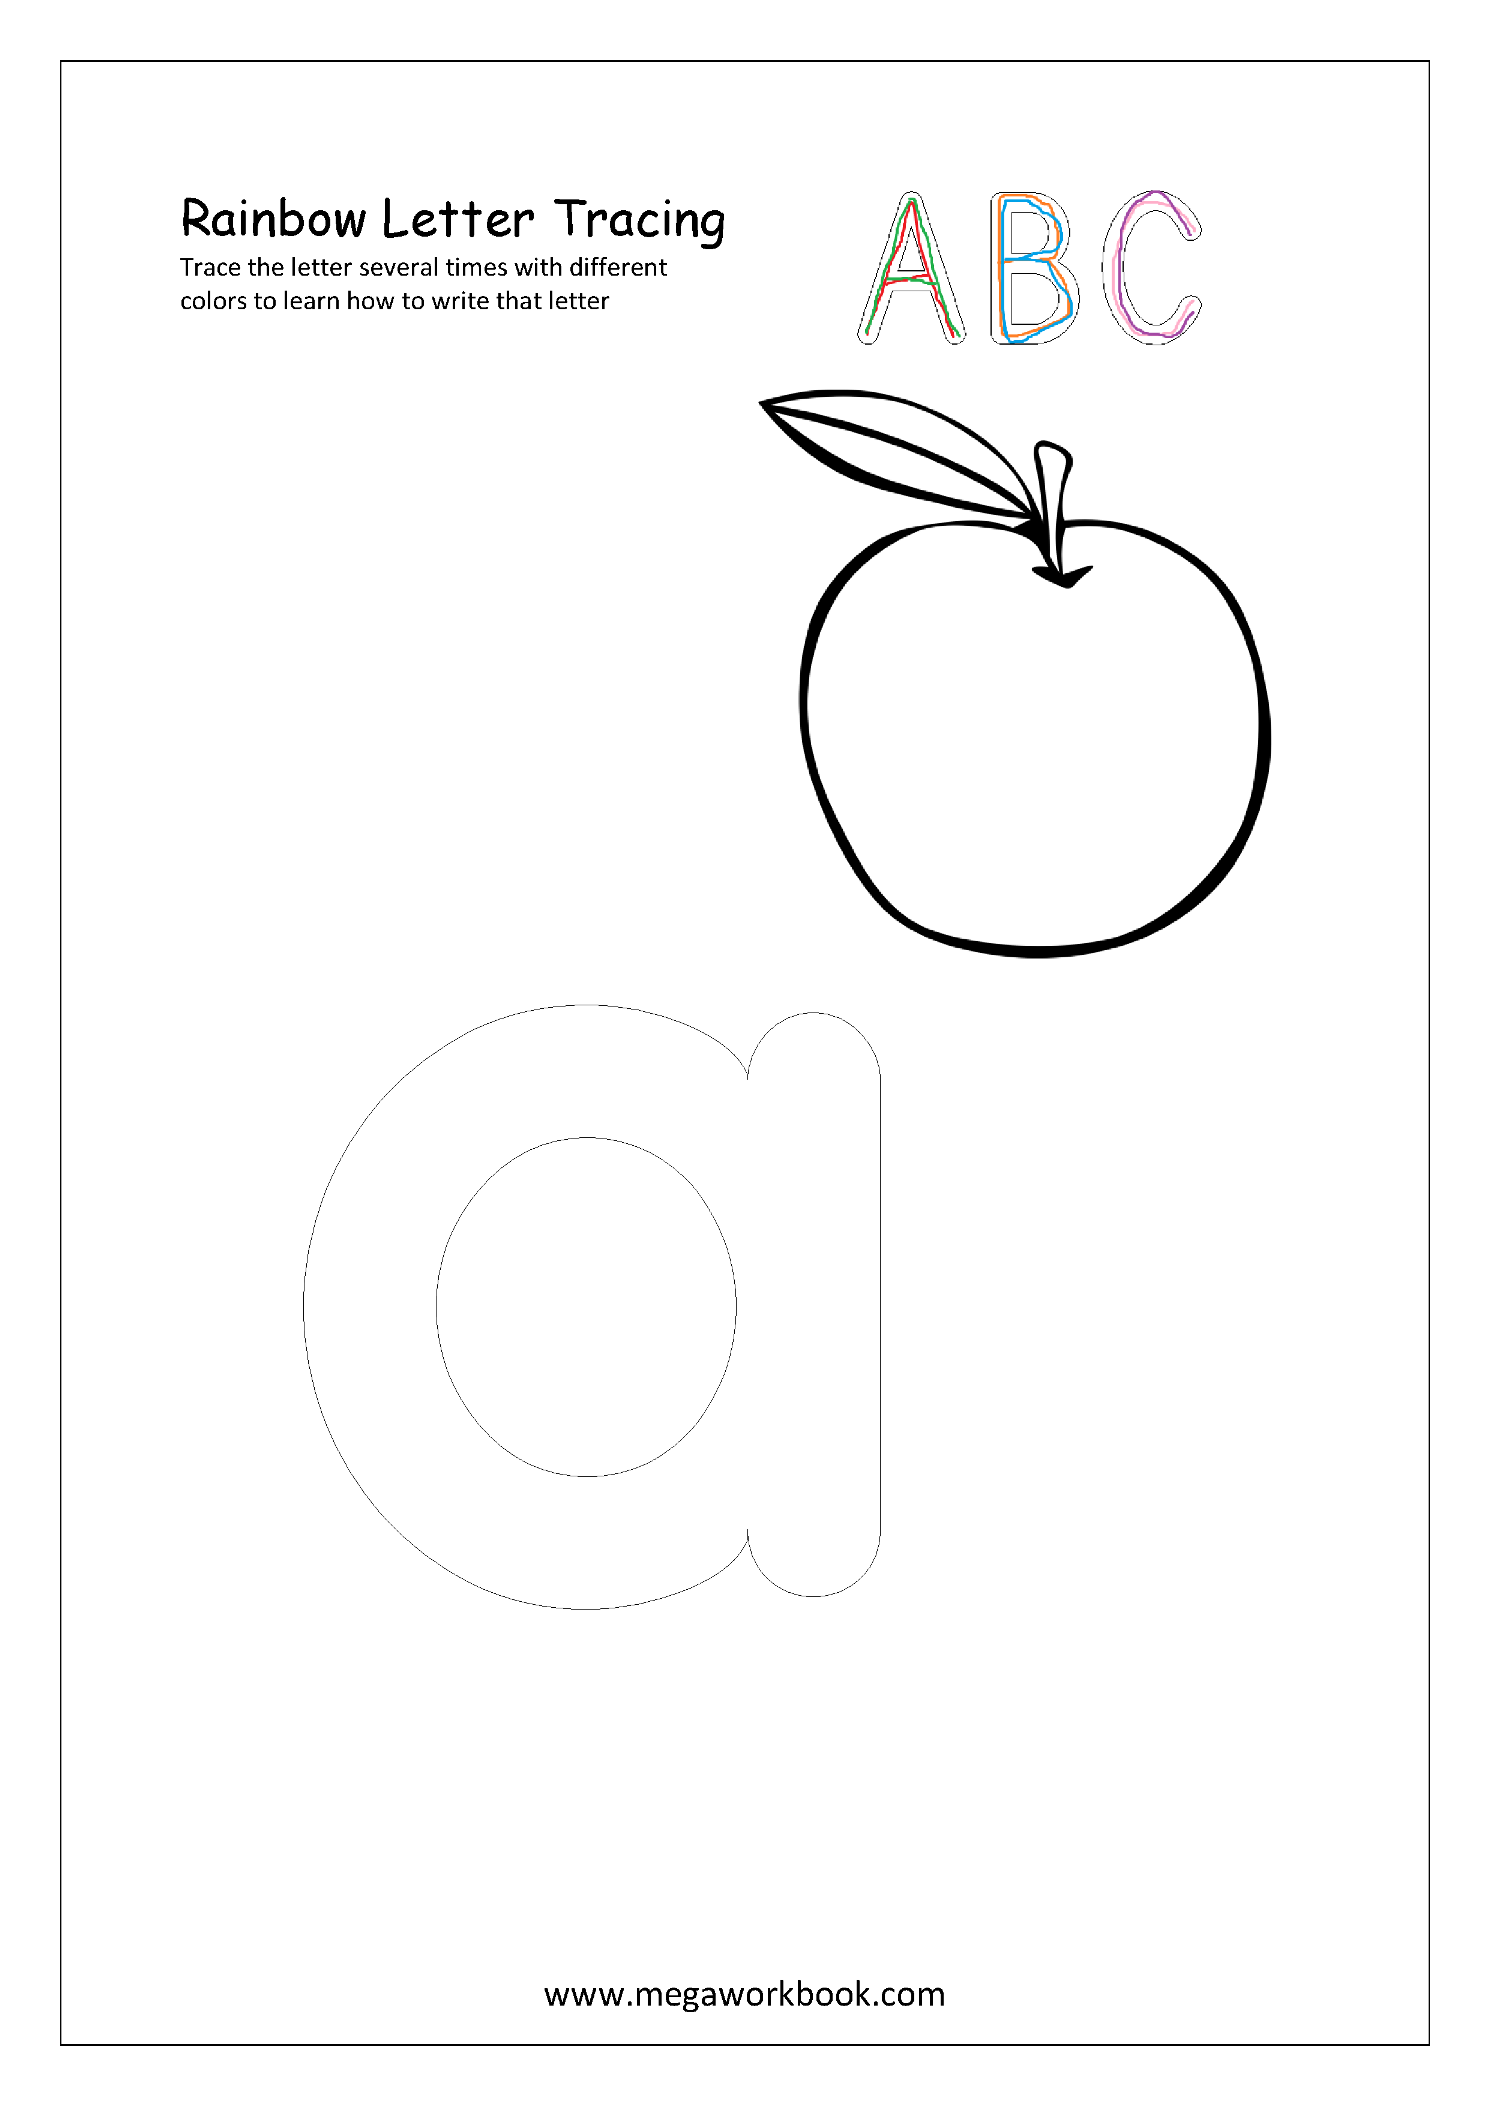 Free English Worksheets - Rainbow Letter Tracing | Tracing